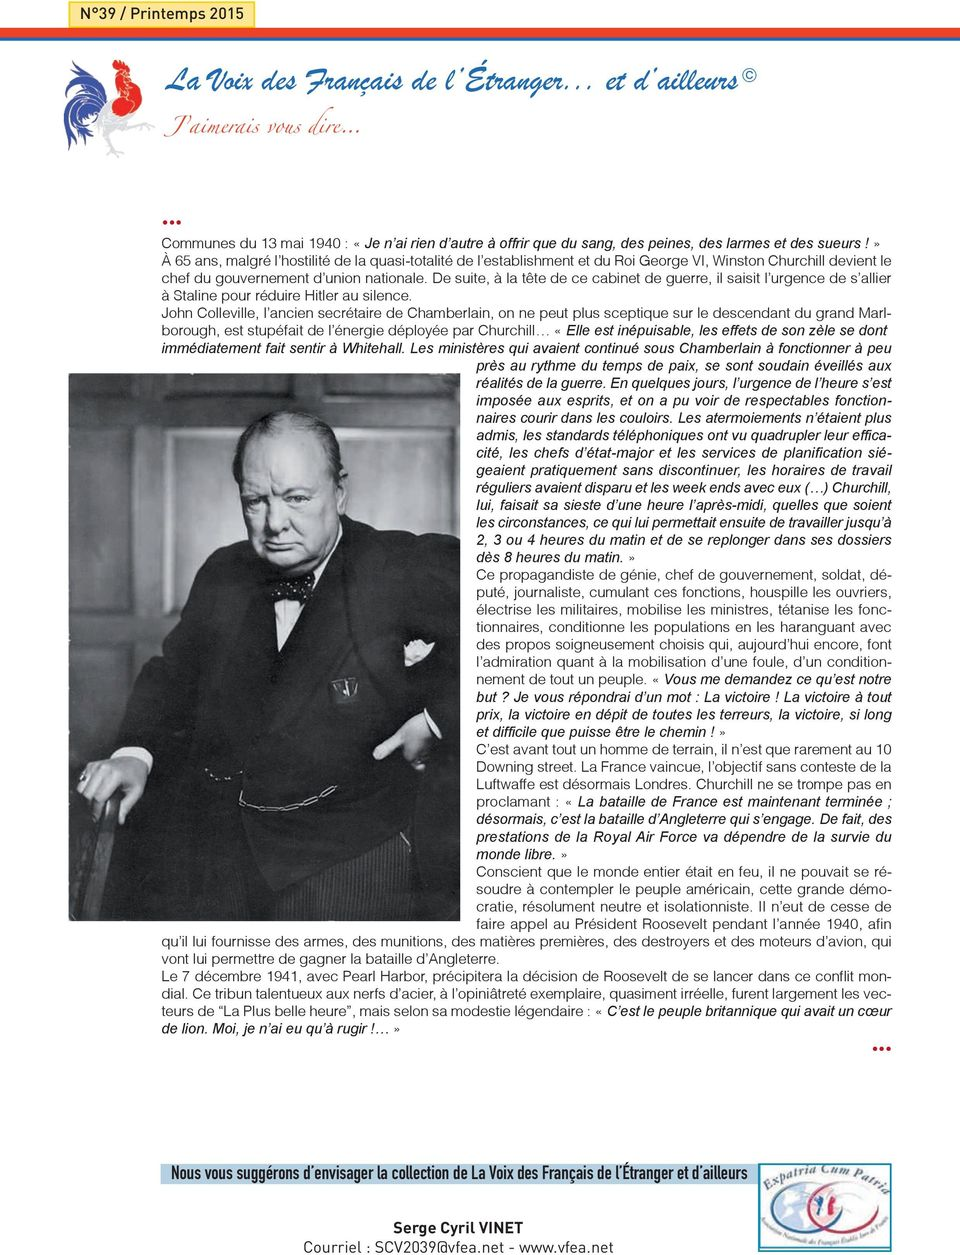 l establishment et du Roi George VI, Winston Churchill devient le chef du gouvernement d union nationale.